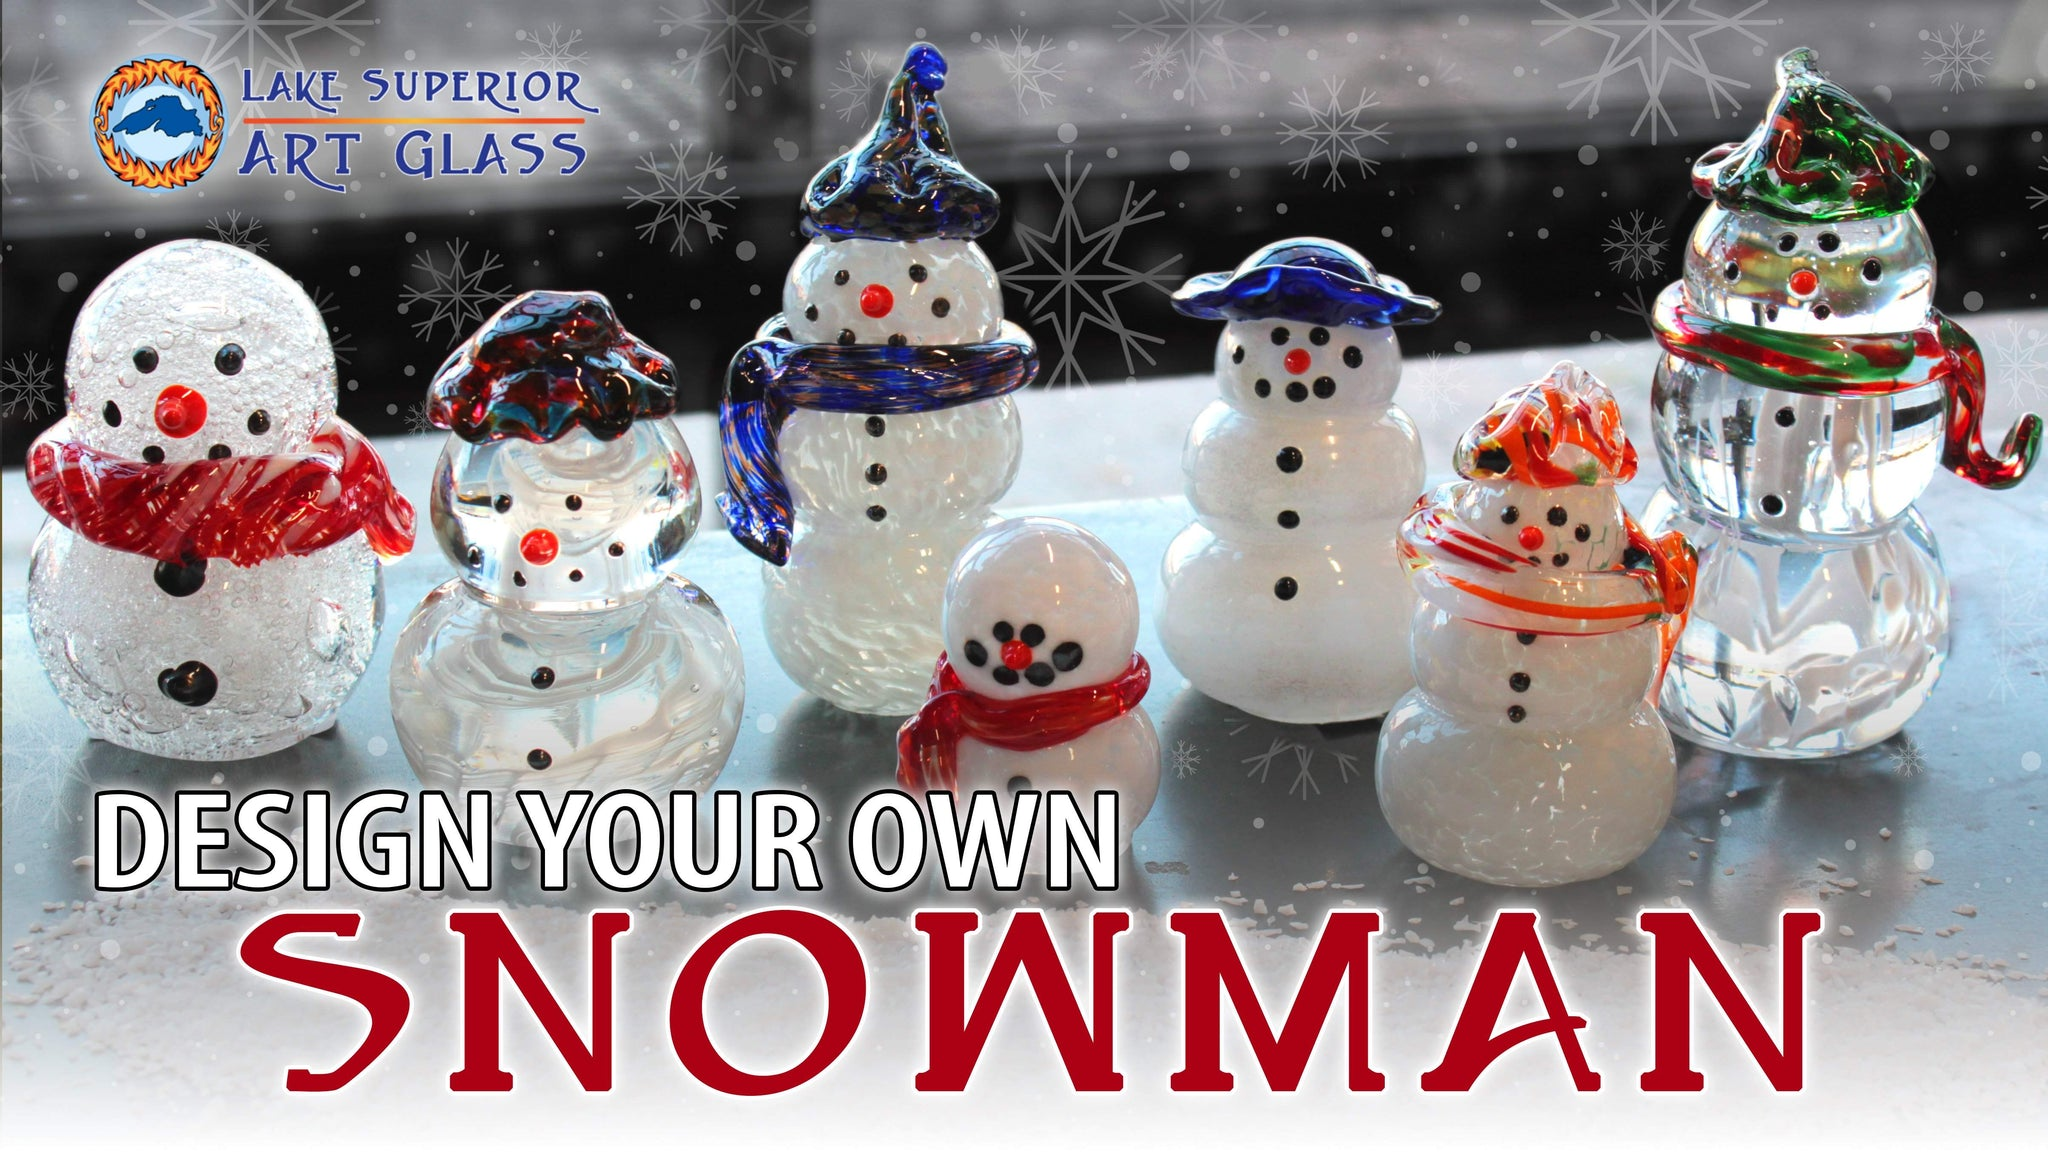 Design Your Own Snowman - Lake Superior Art Glass